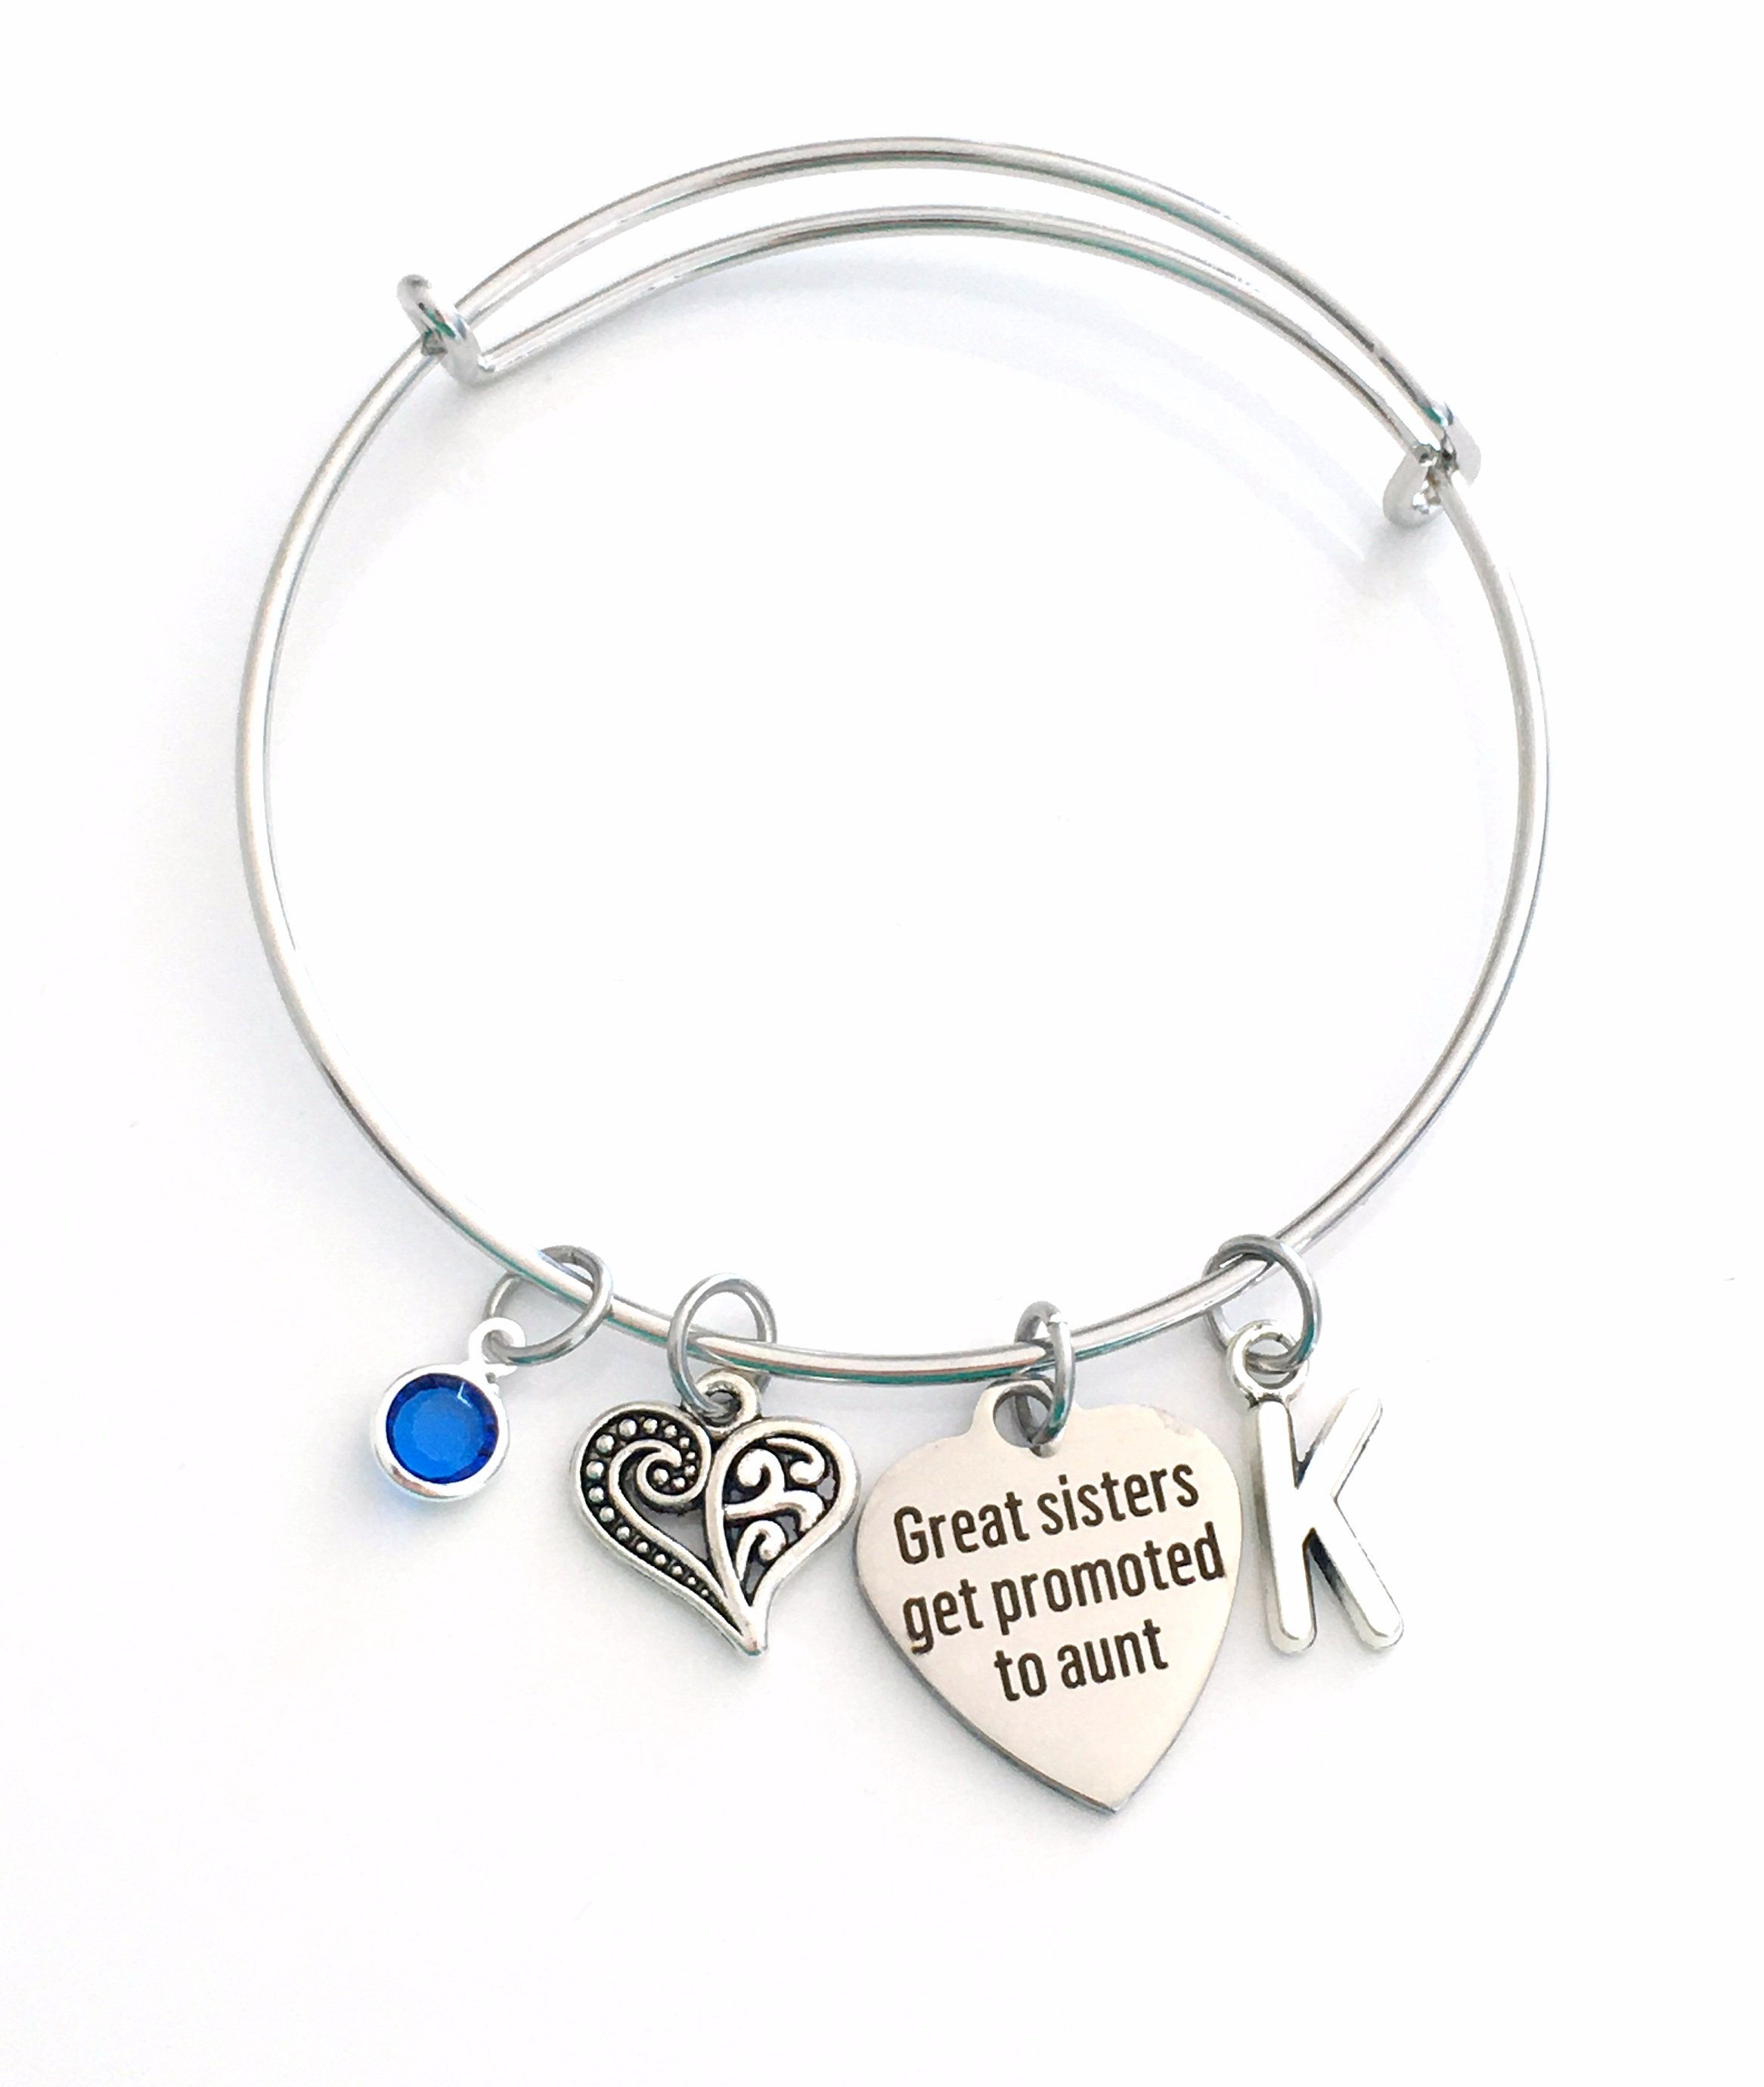 Initial Bracelet Only the best sisters get promoted to aunt Great sisters get promoted to aunt Great Gift sisters for Pregnancy Reveal